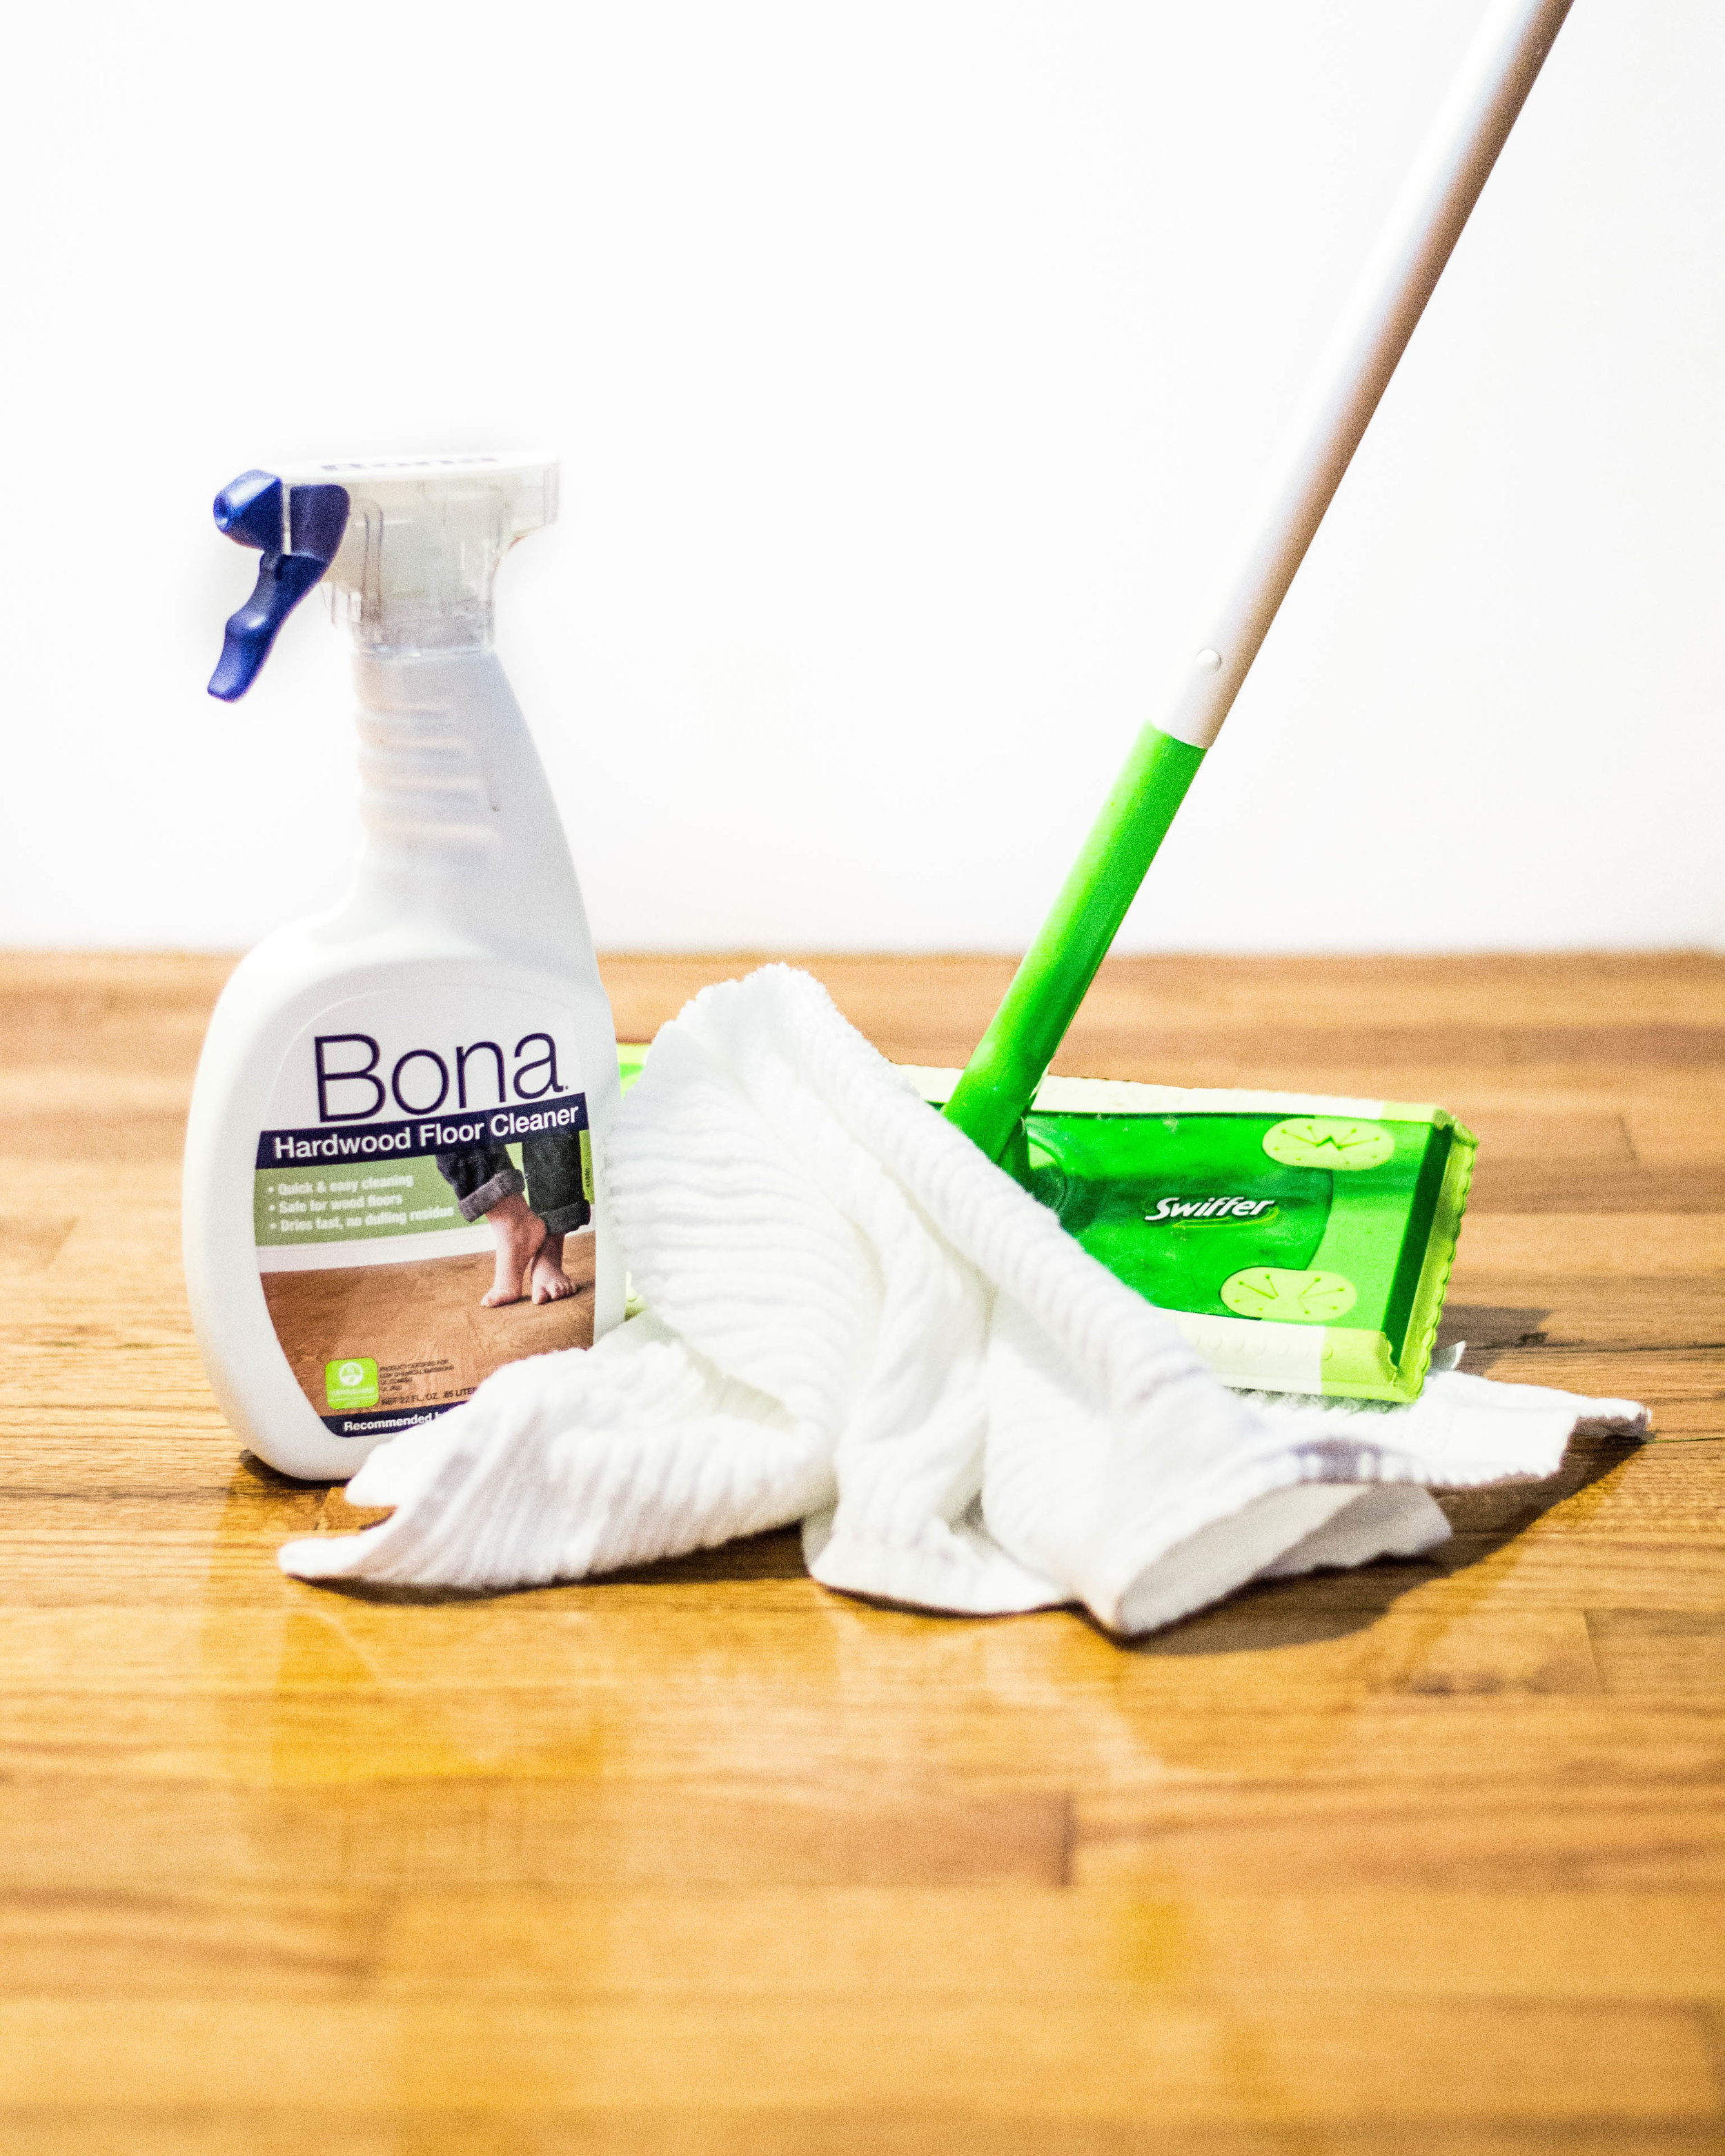 How to clean hardwood floor || Bona Hardwood Floor Cleaner & Swiffer Sweeper || by Hayley Fiser || thehayleyfiser.com